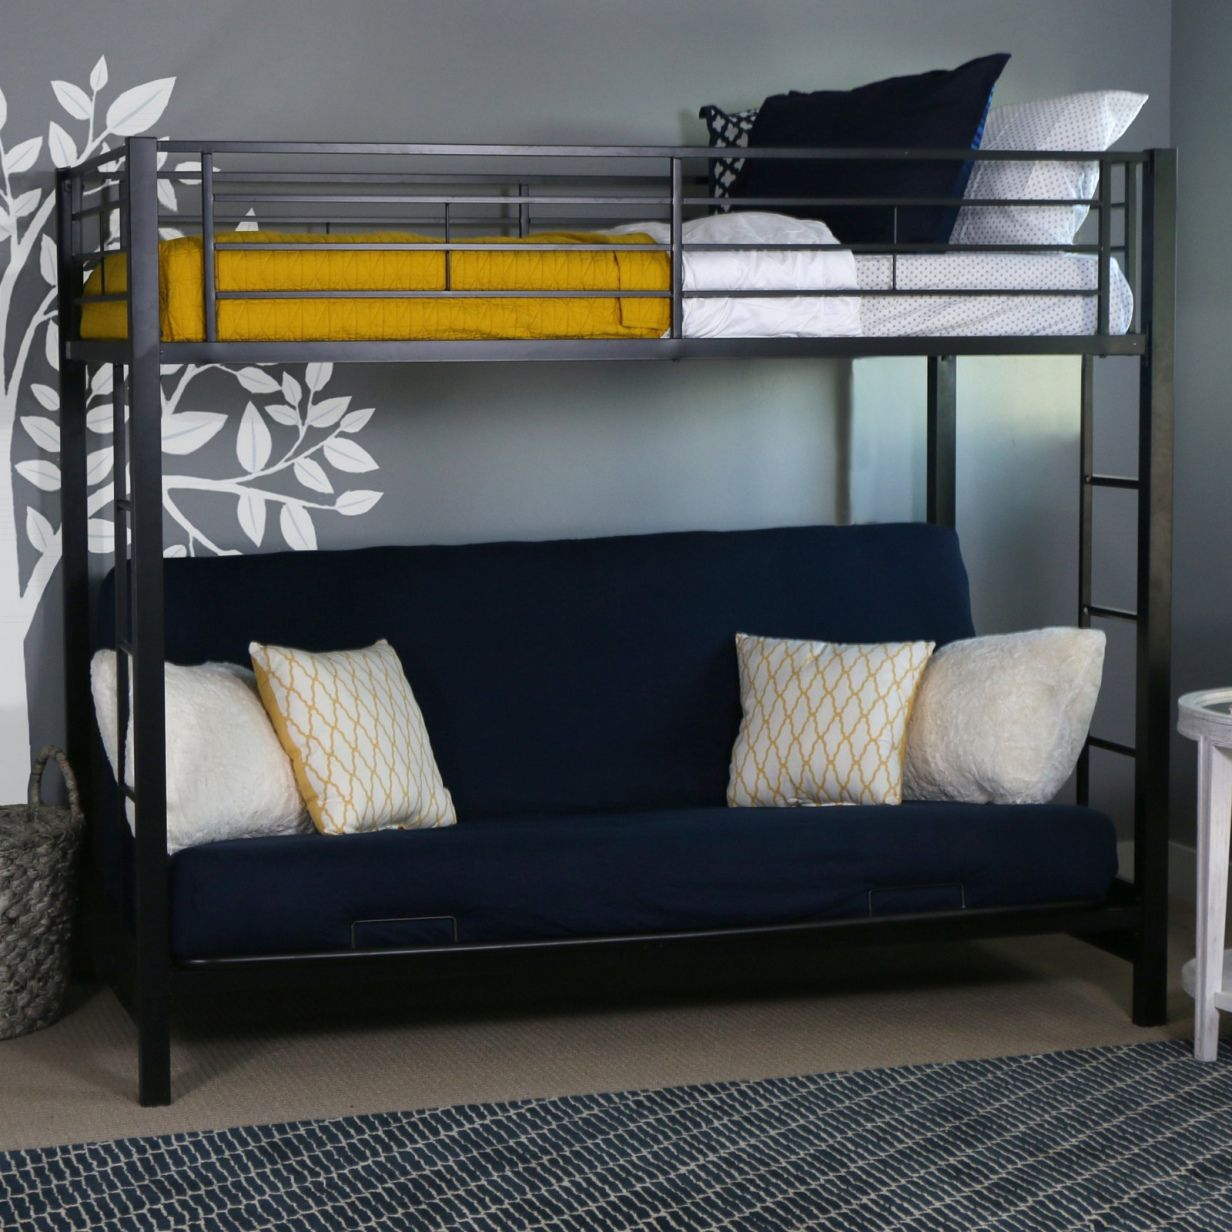 Awesome Futon Bunk Bed Frame Check more at http://dust-war.com/futon ...